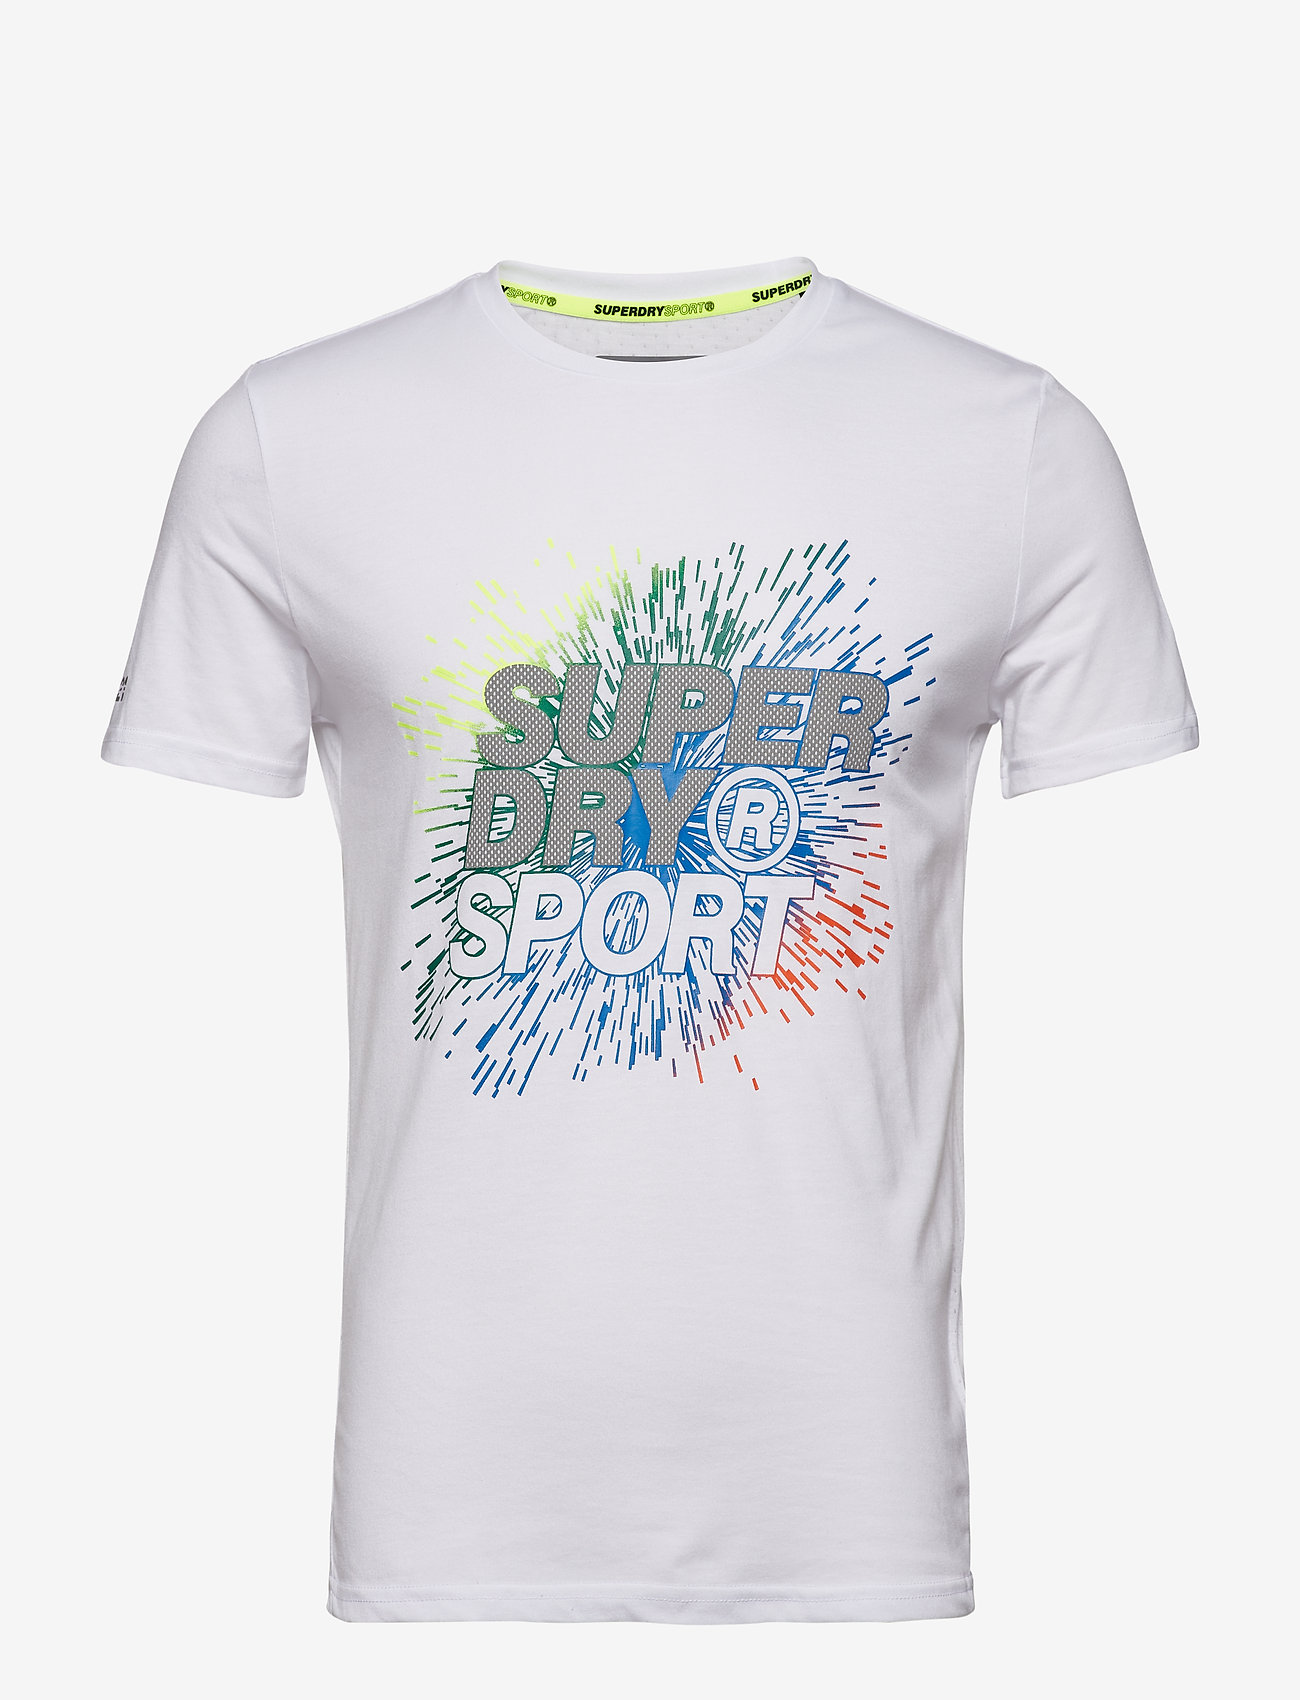 Active Explosive Tee (White) - Superdry Sport 8HYoW2